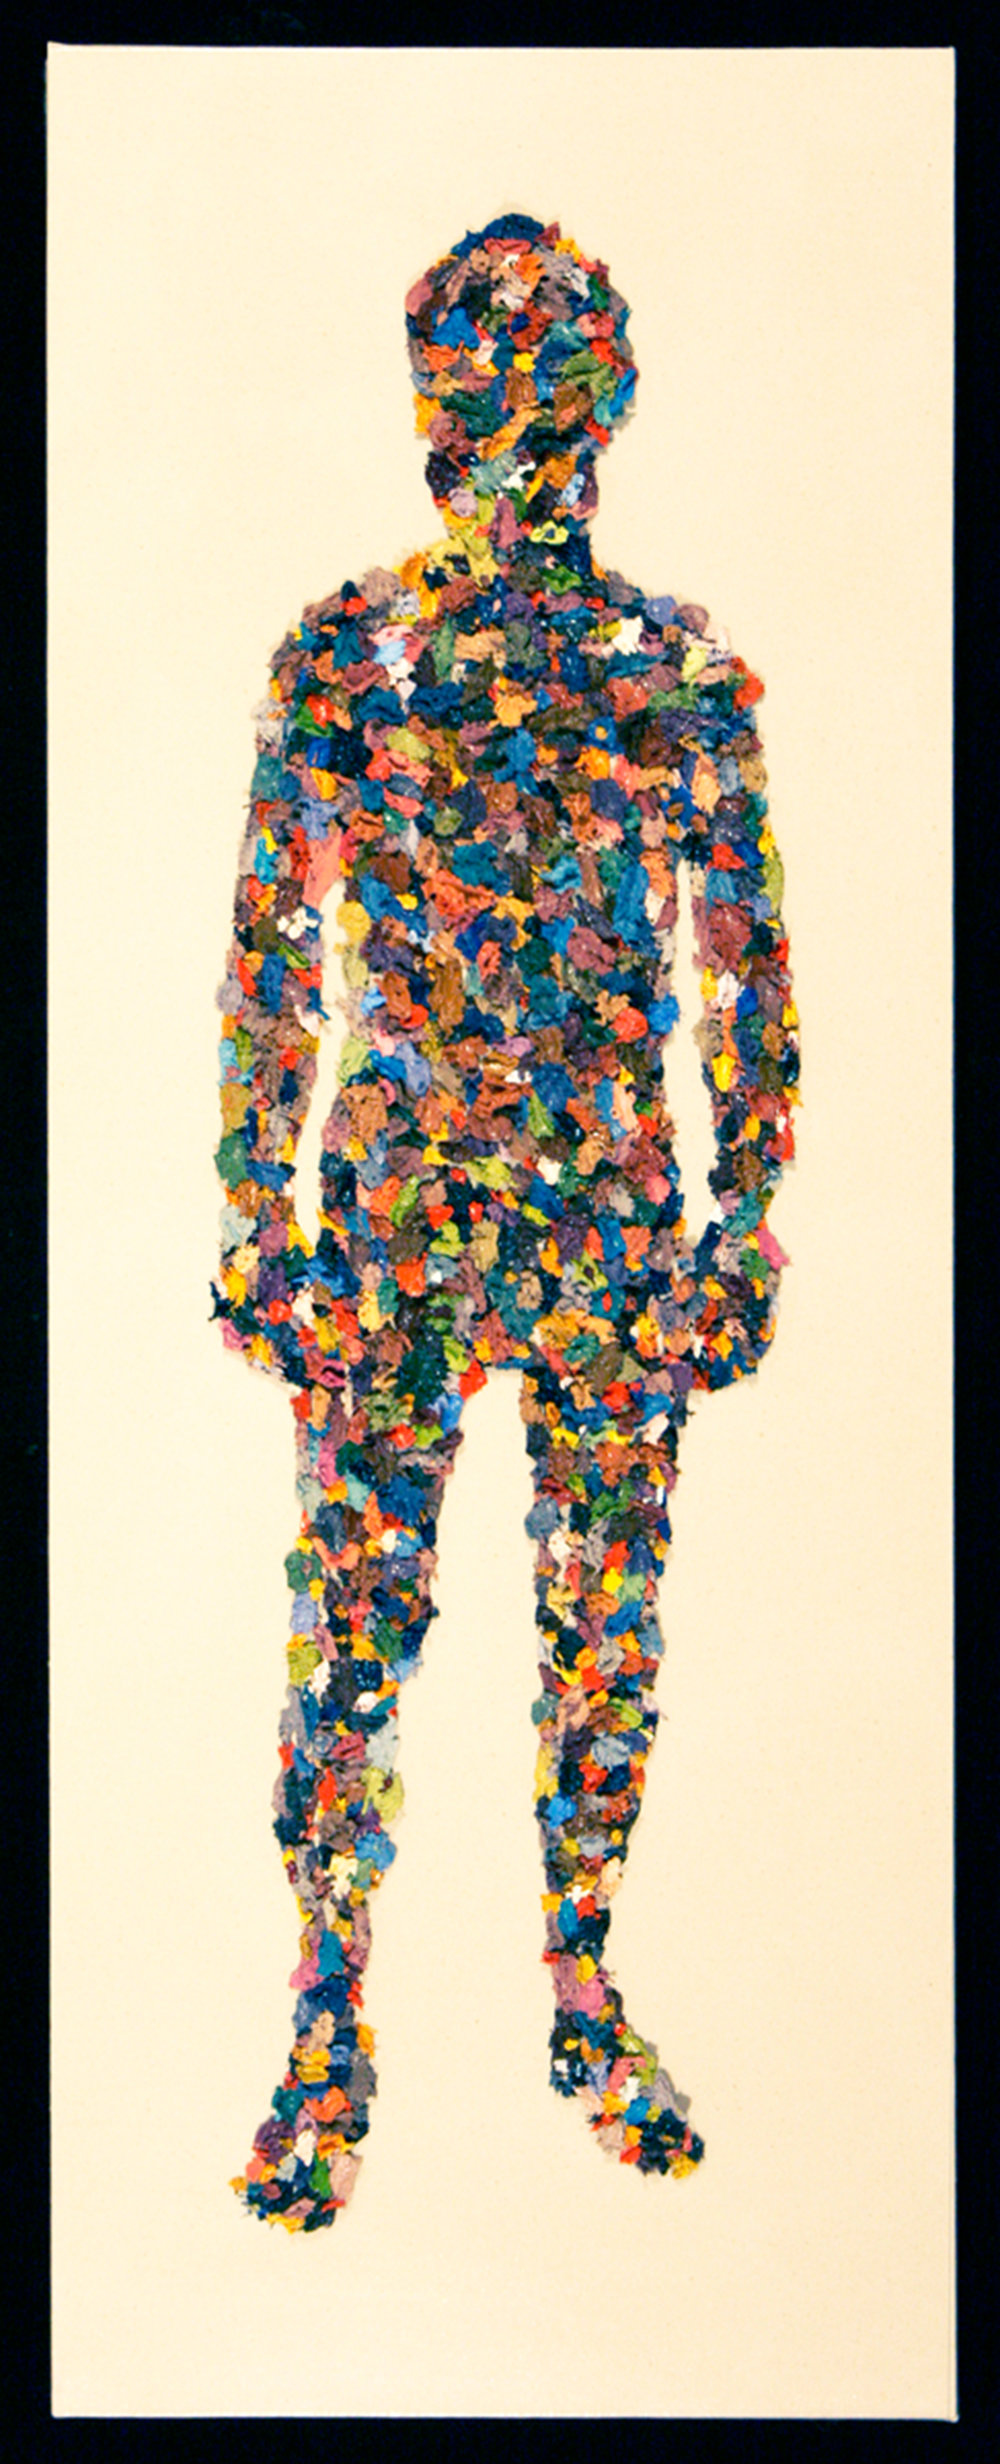 AP X (Self-Portrait), 2008  |   48 x 18 inches  |  oil and urethane on canvas